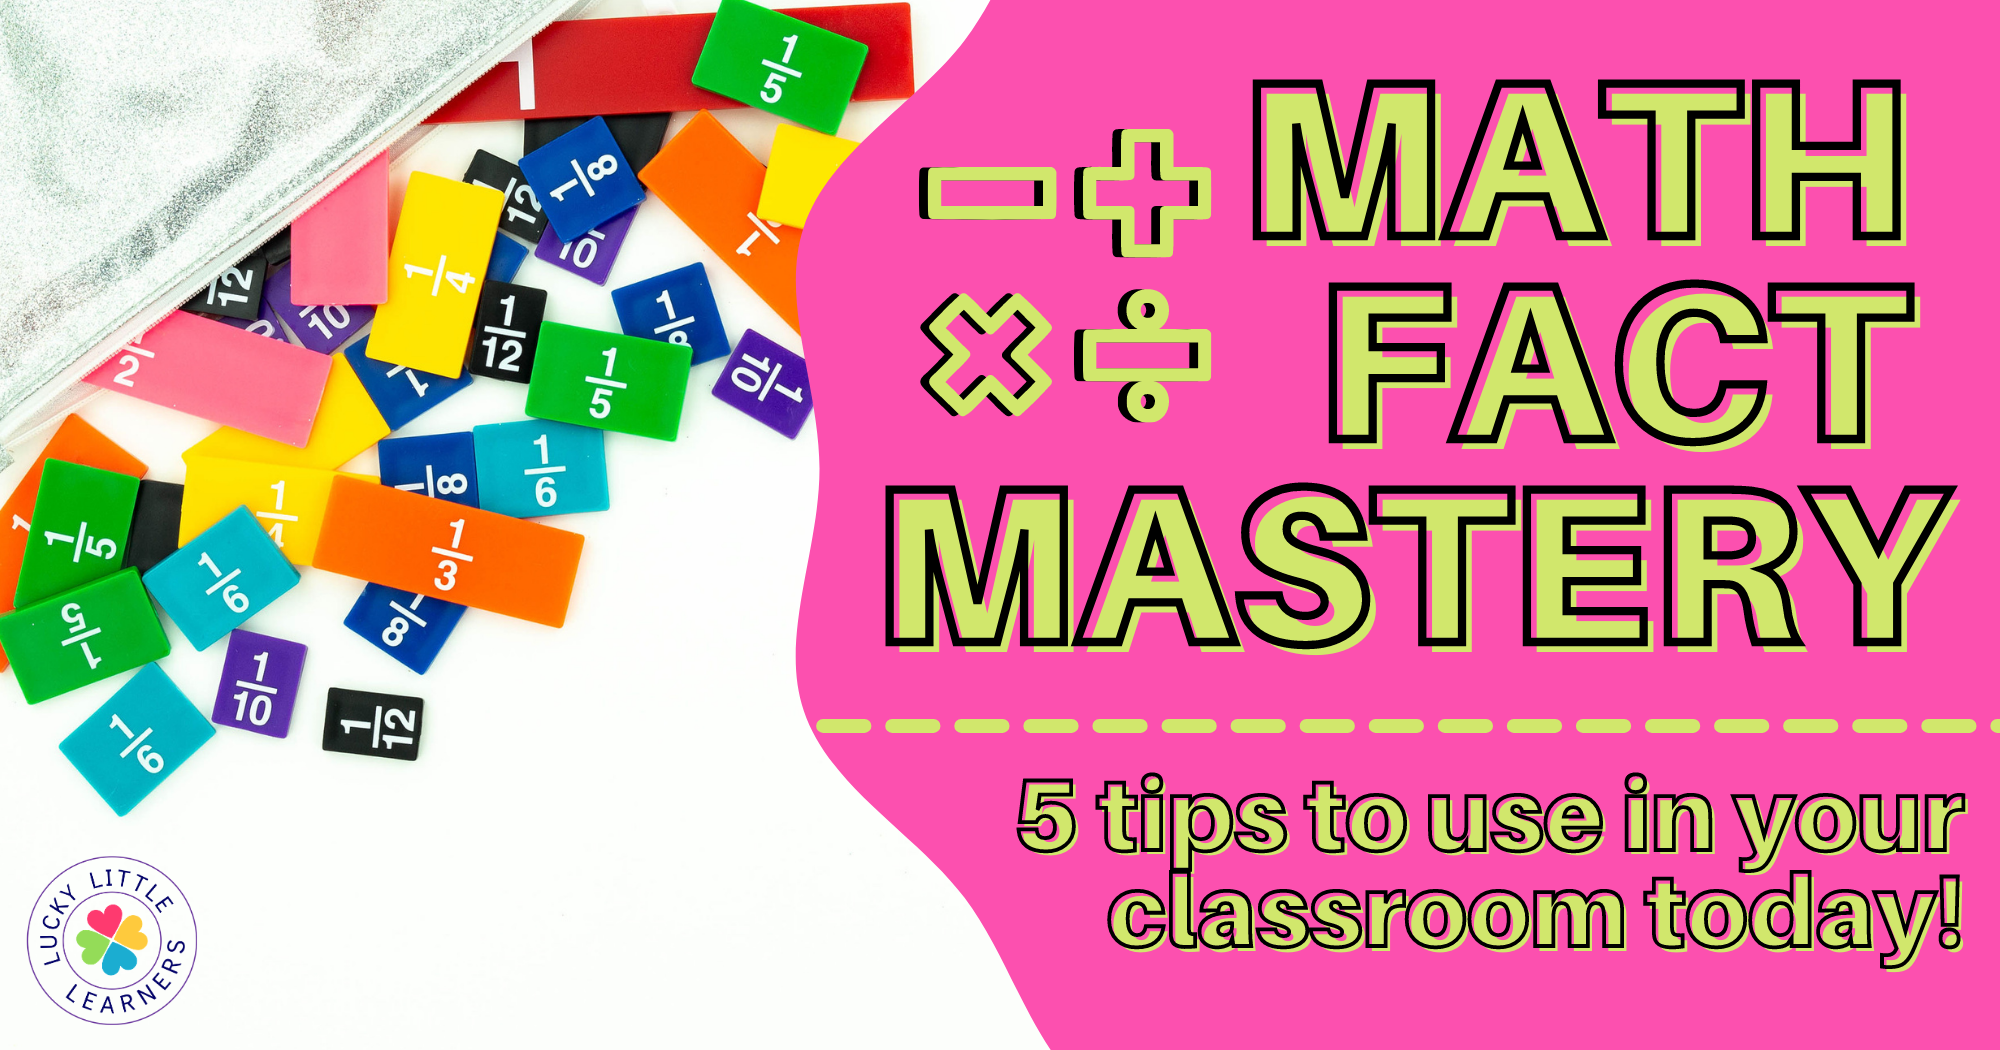 Math Facts Mastery:  5 Tips to Use in Your Classroom Today!